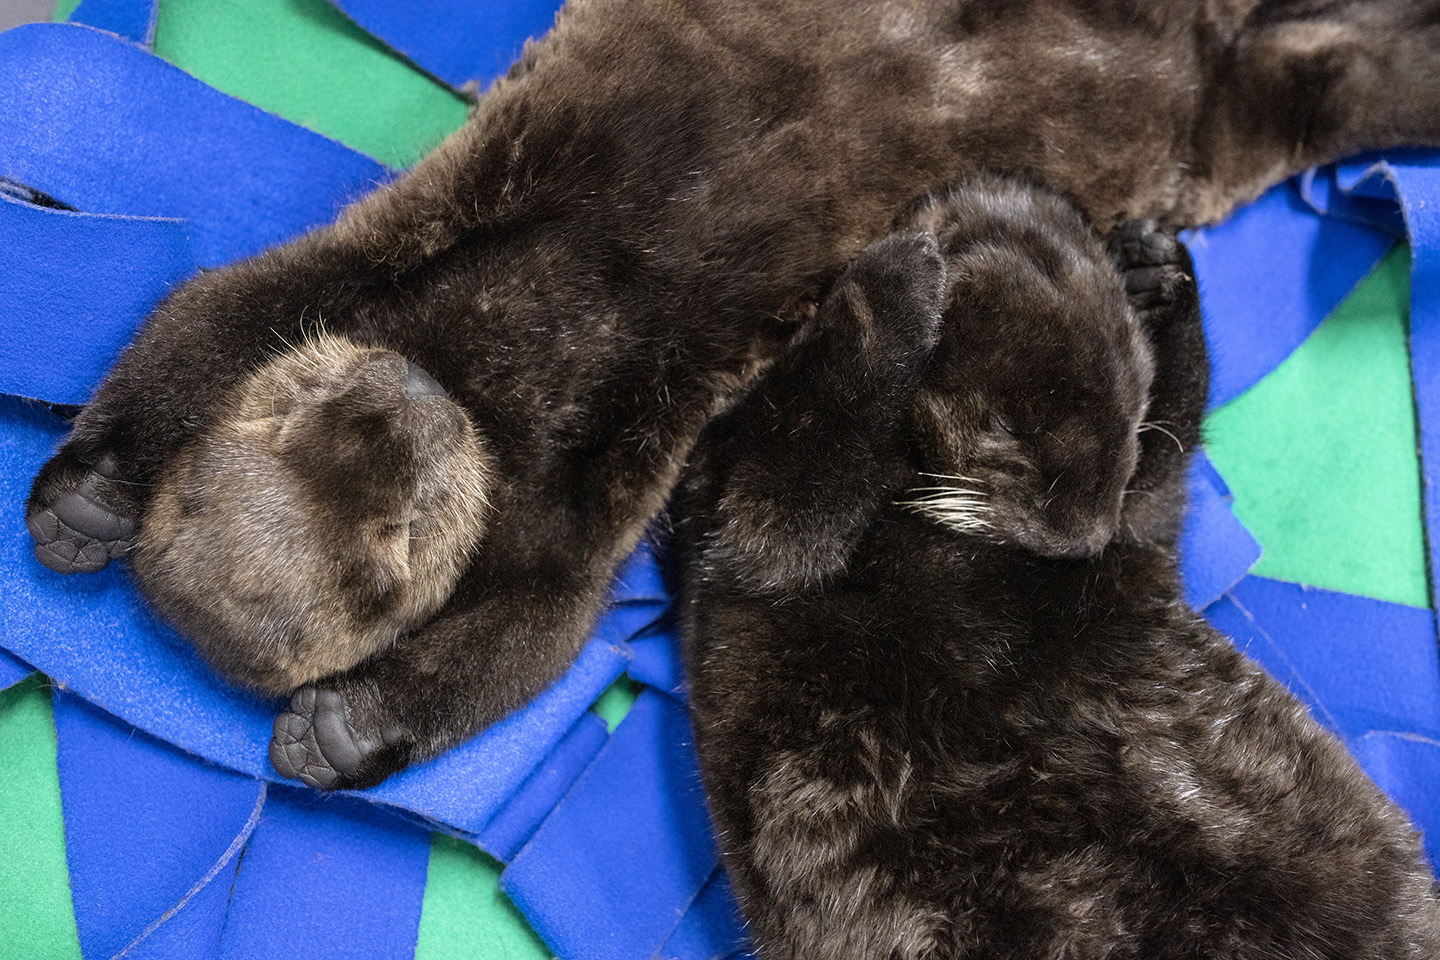 PHOTOS: Rescued sea otter pups being named in a digital contest